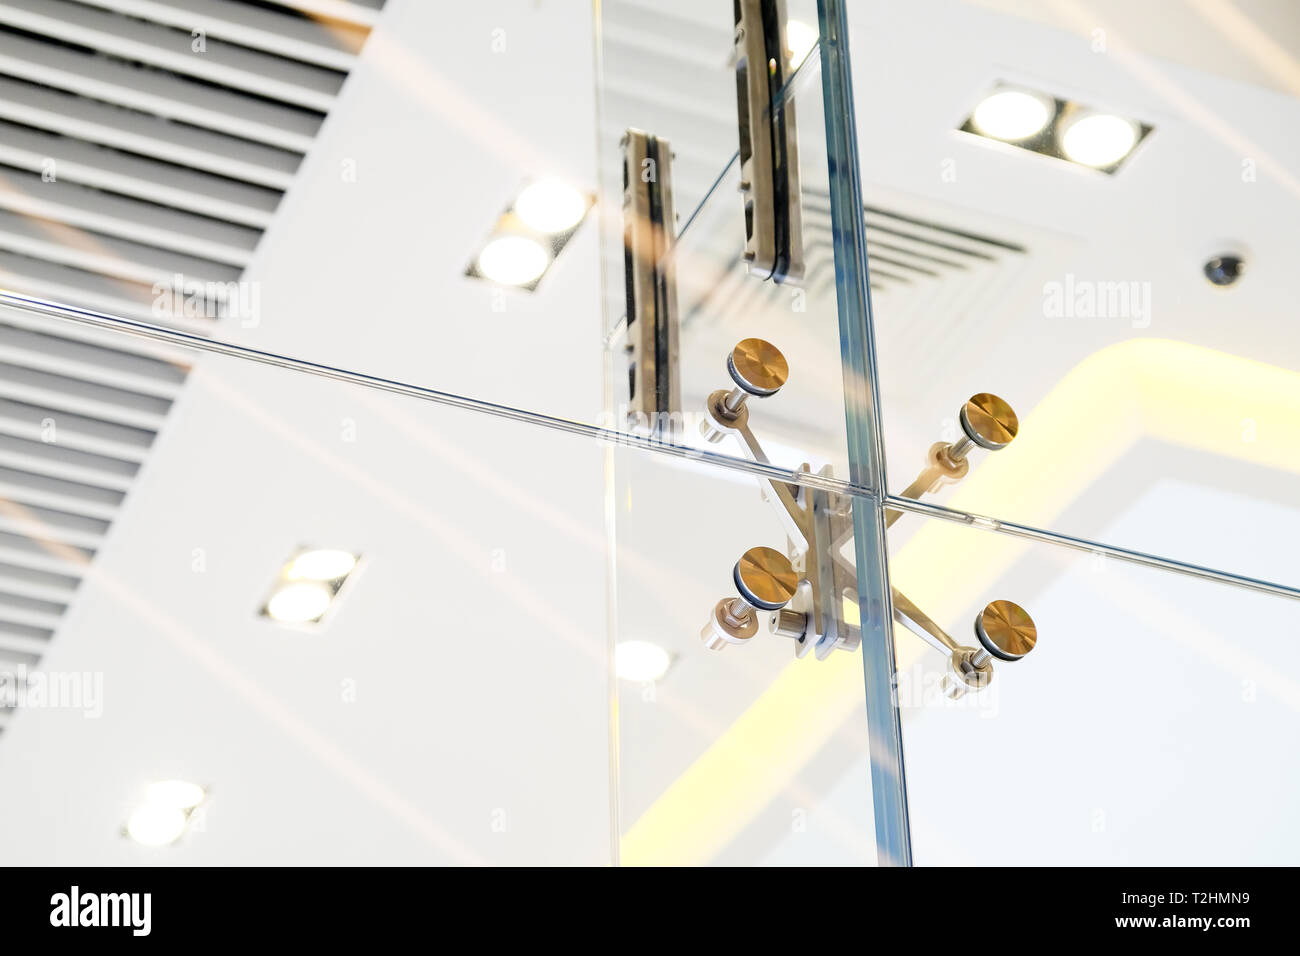 Glass facades and walls. Metal fasteners. Selective focus - Stock Image